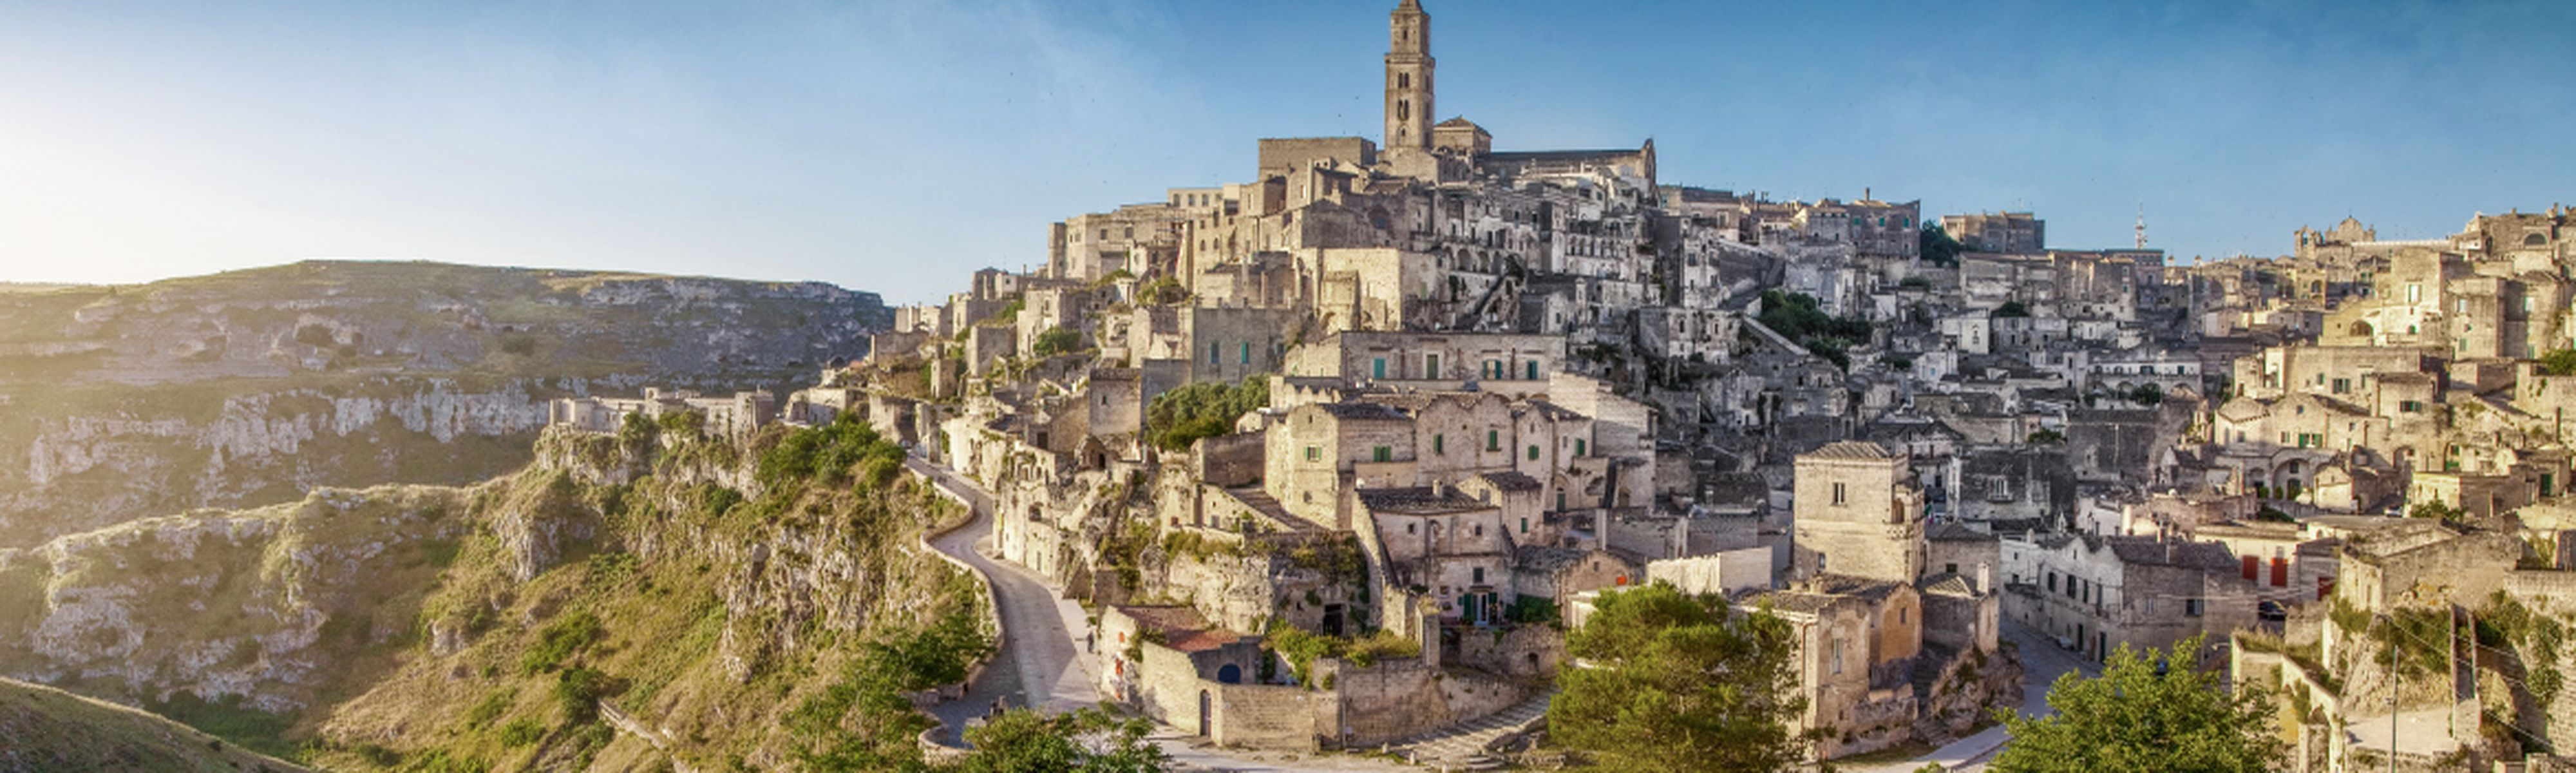 Sassi district in Matera, Italy